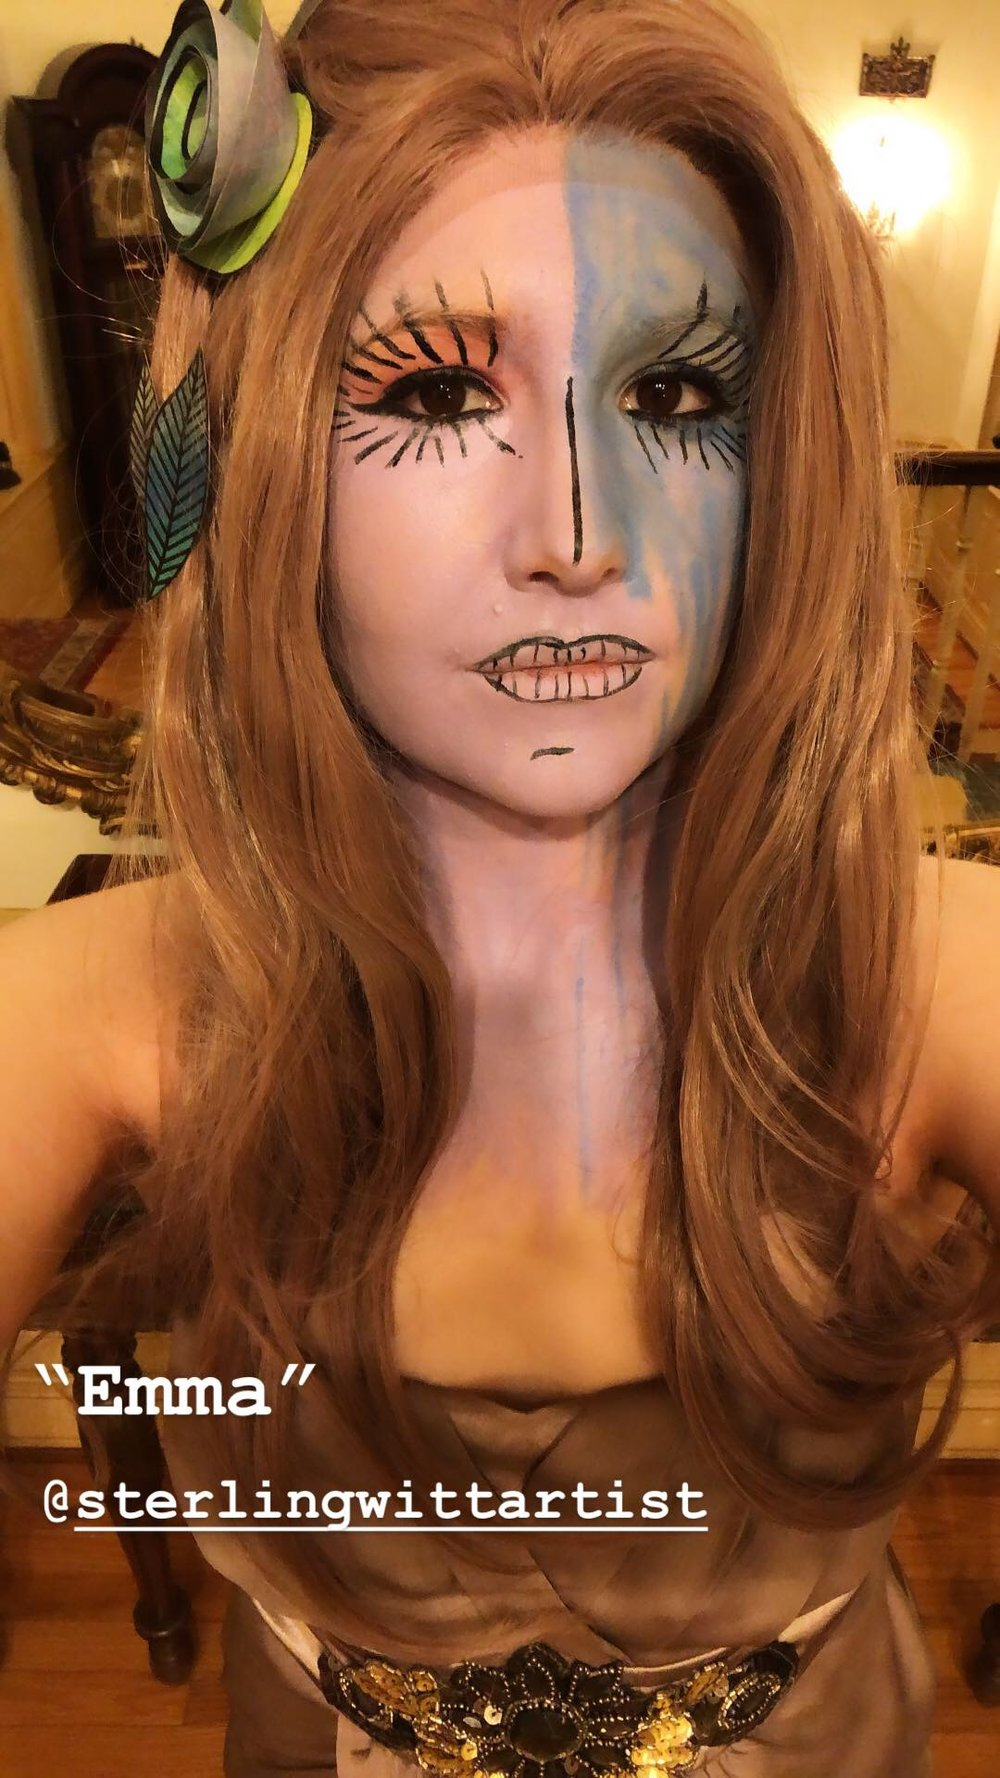 Emma Carter as Emma the painting.